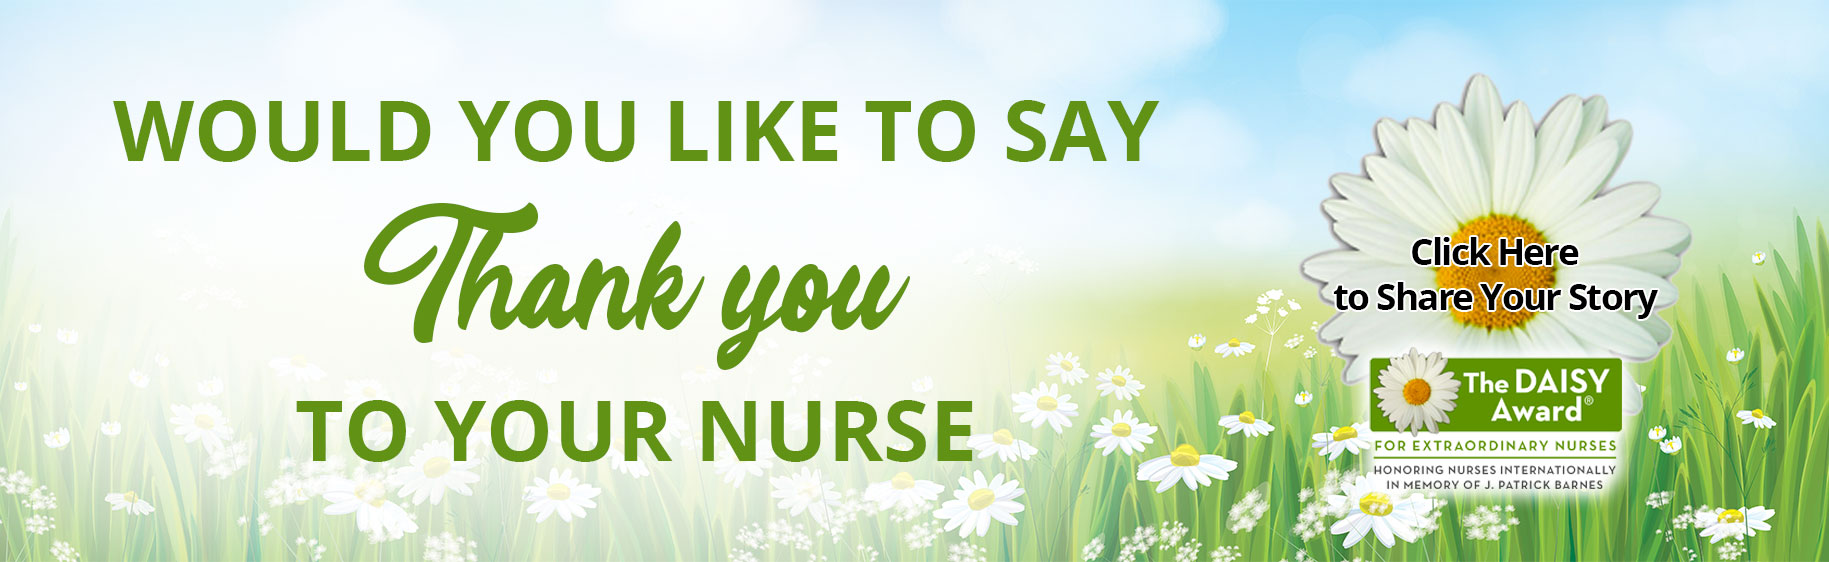 Picture is a Banner with a lot of Daisies in a grassy area   Banner says: WOULD YOU LIKE TO SAY Thank You TO YOUR NURSE